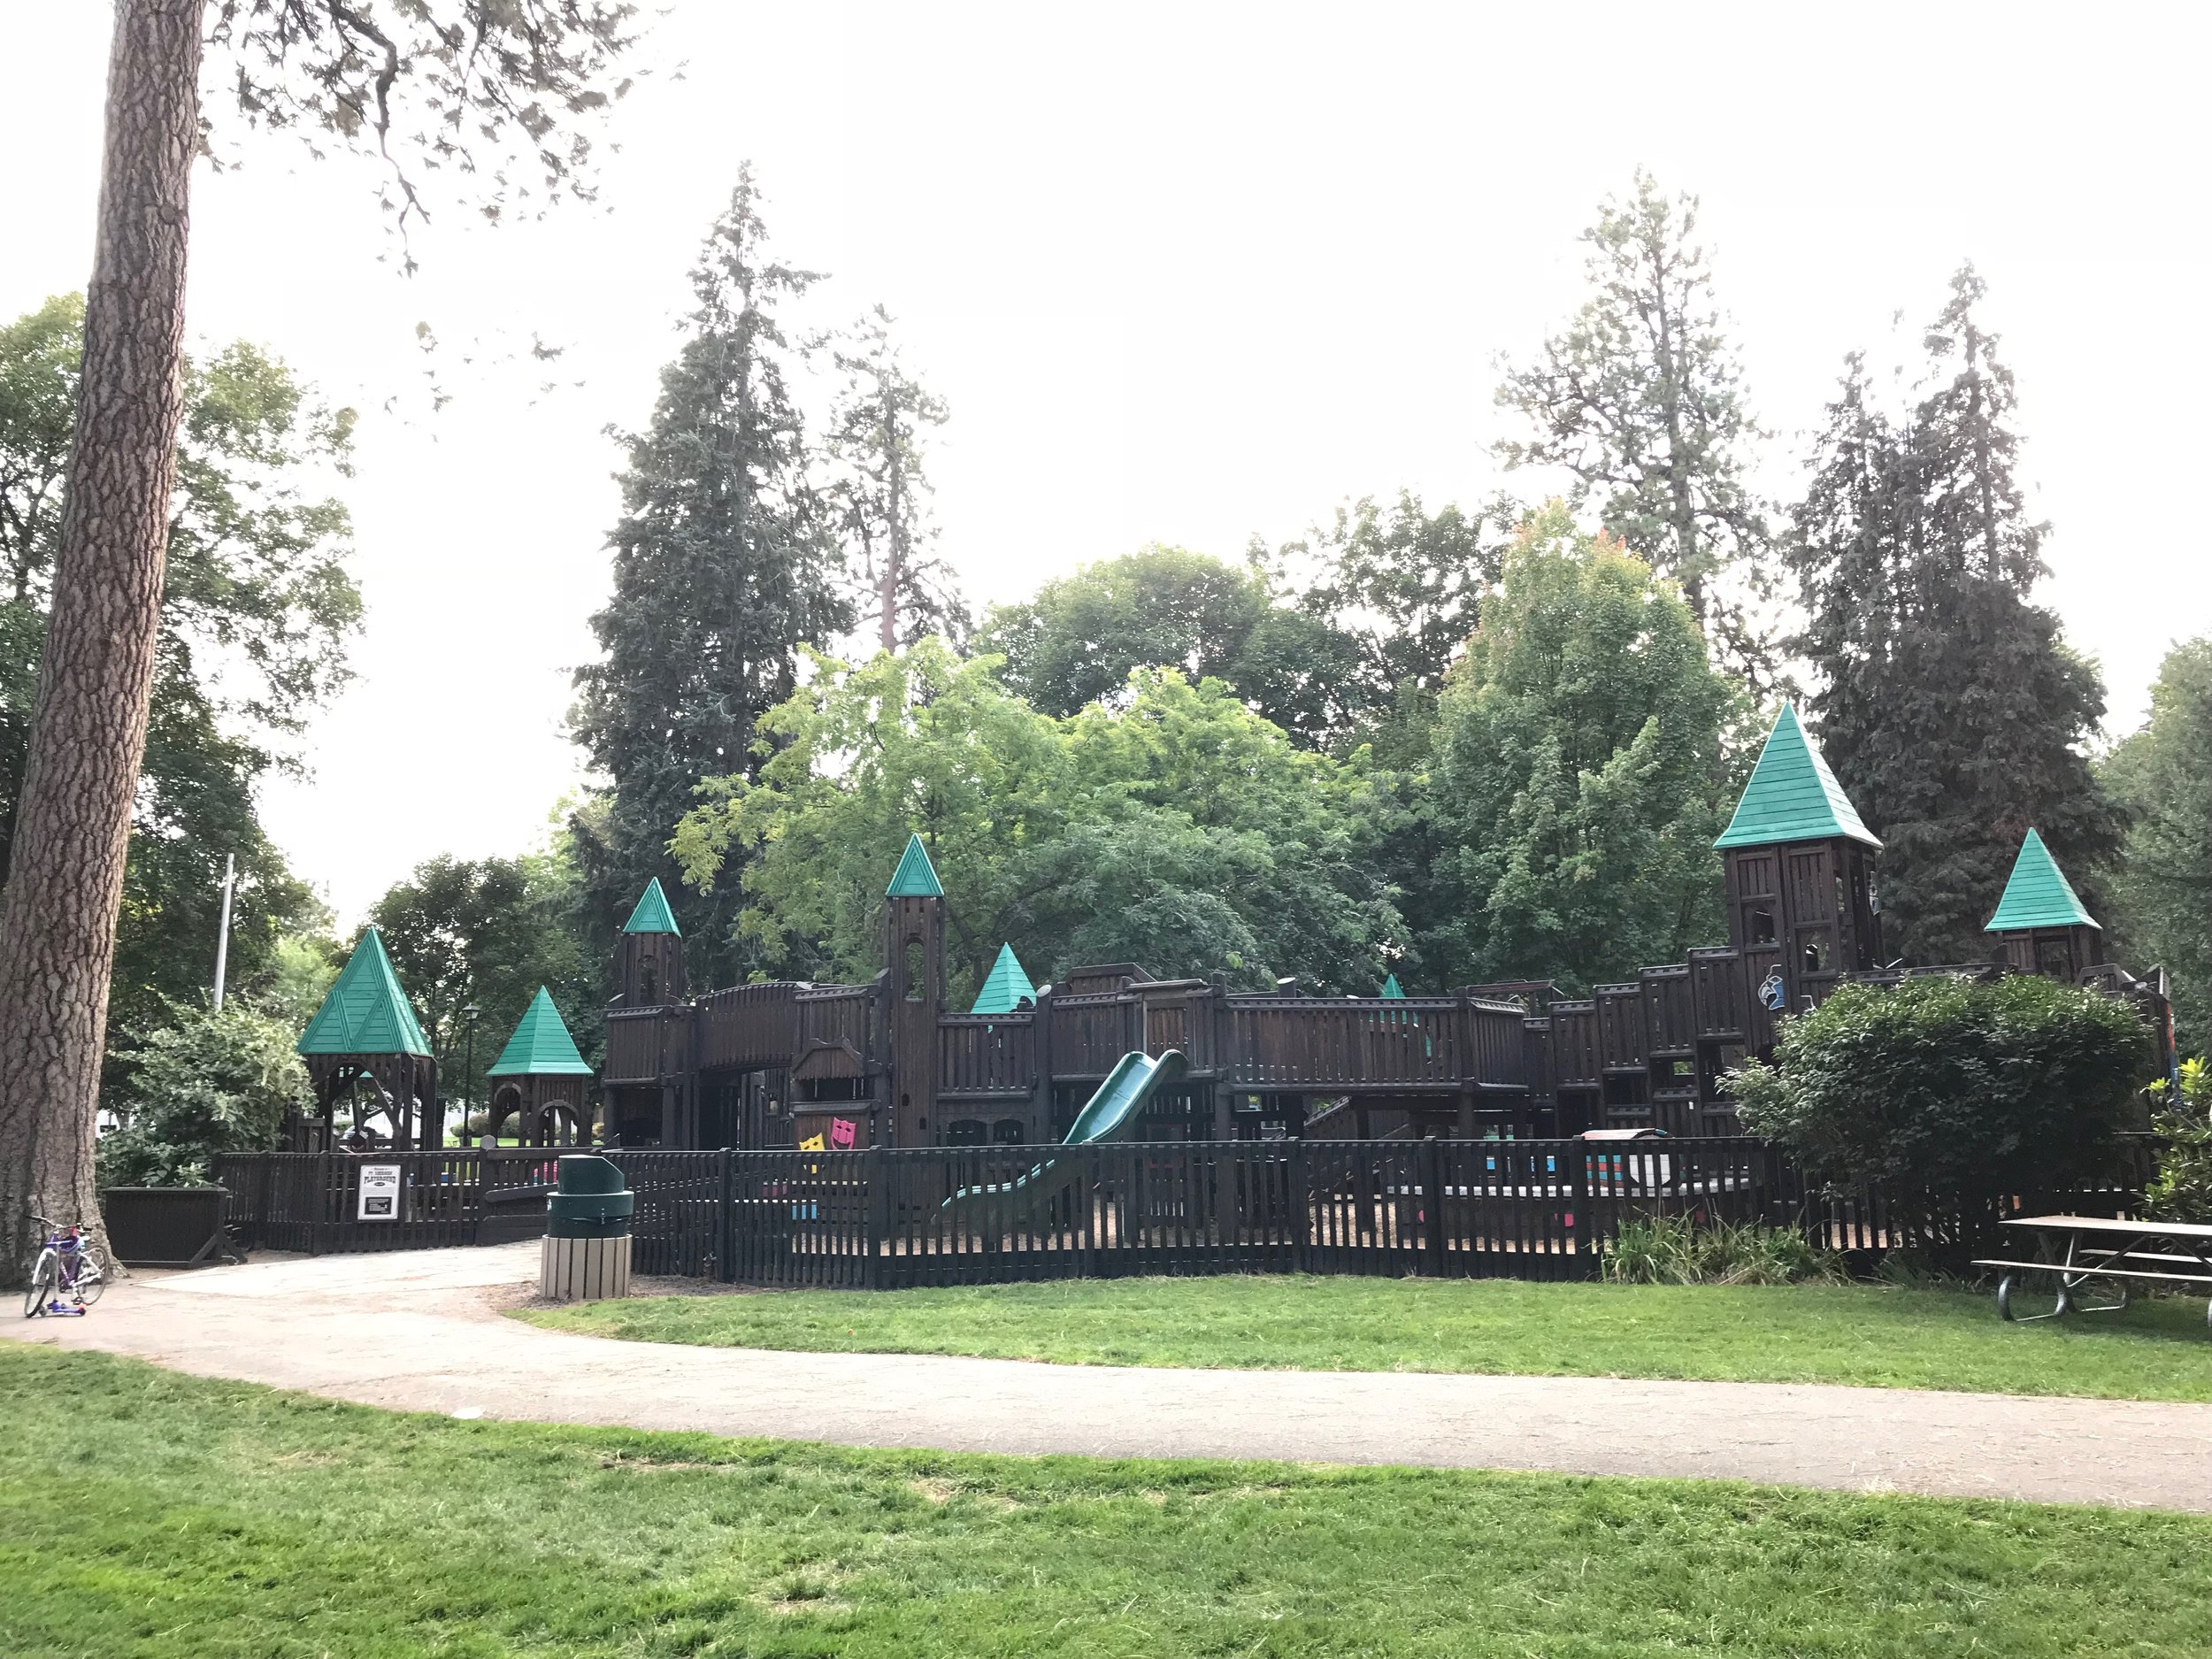 This contained playground has two sides; big kids and toddler